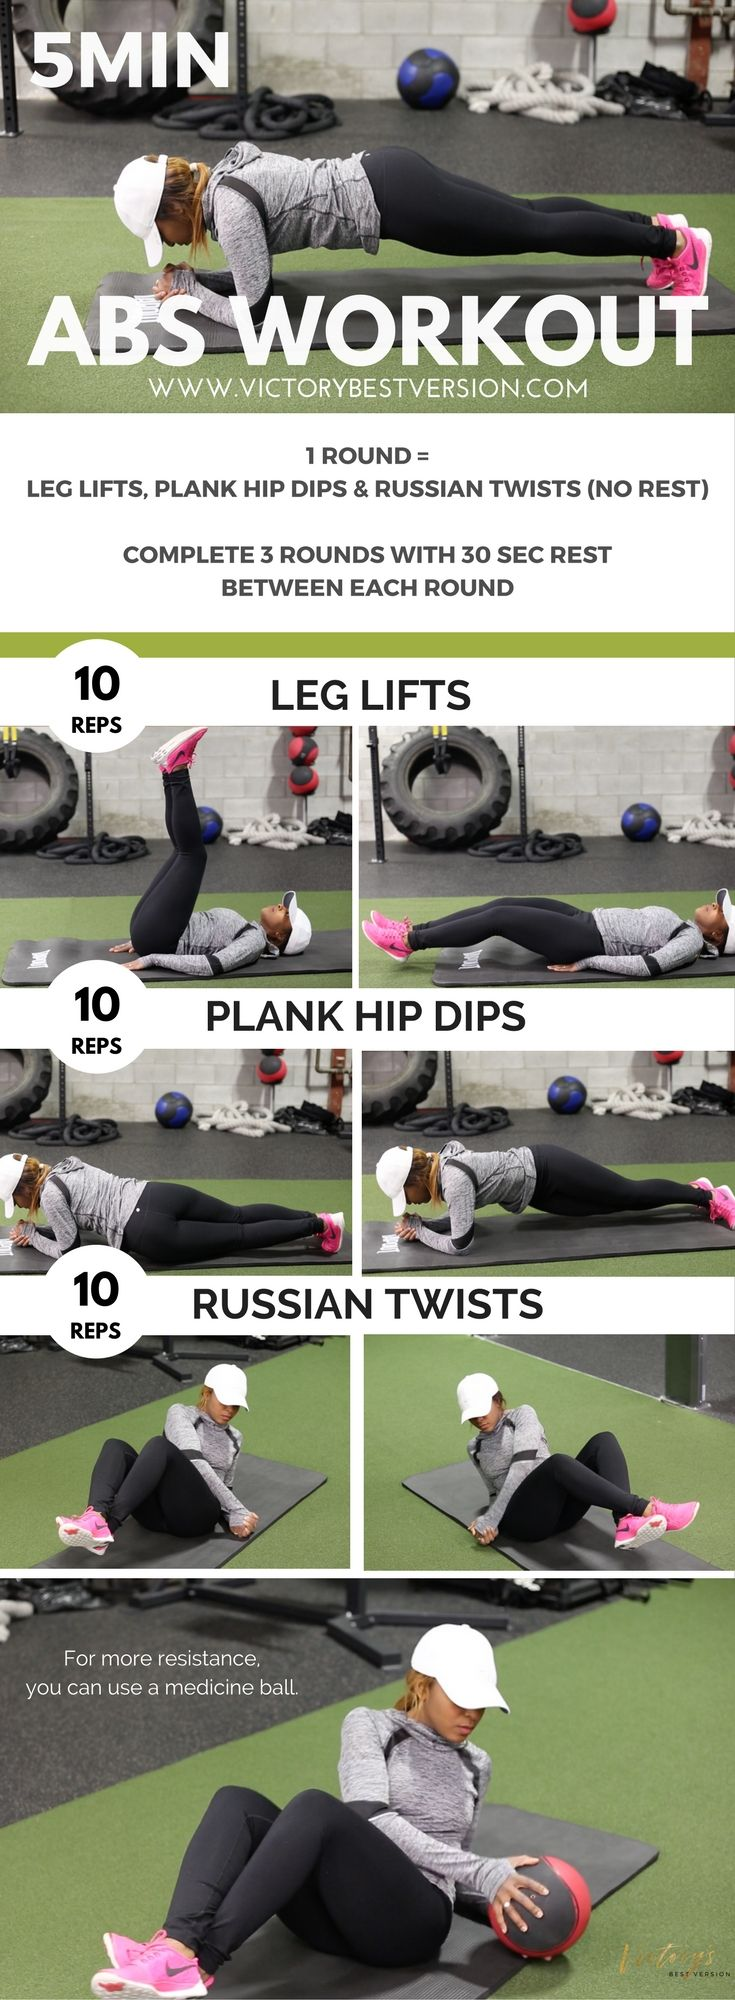 Burn That Lower Belly Fat With This Quick Abs Workout! — Victory's Best Version